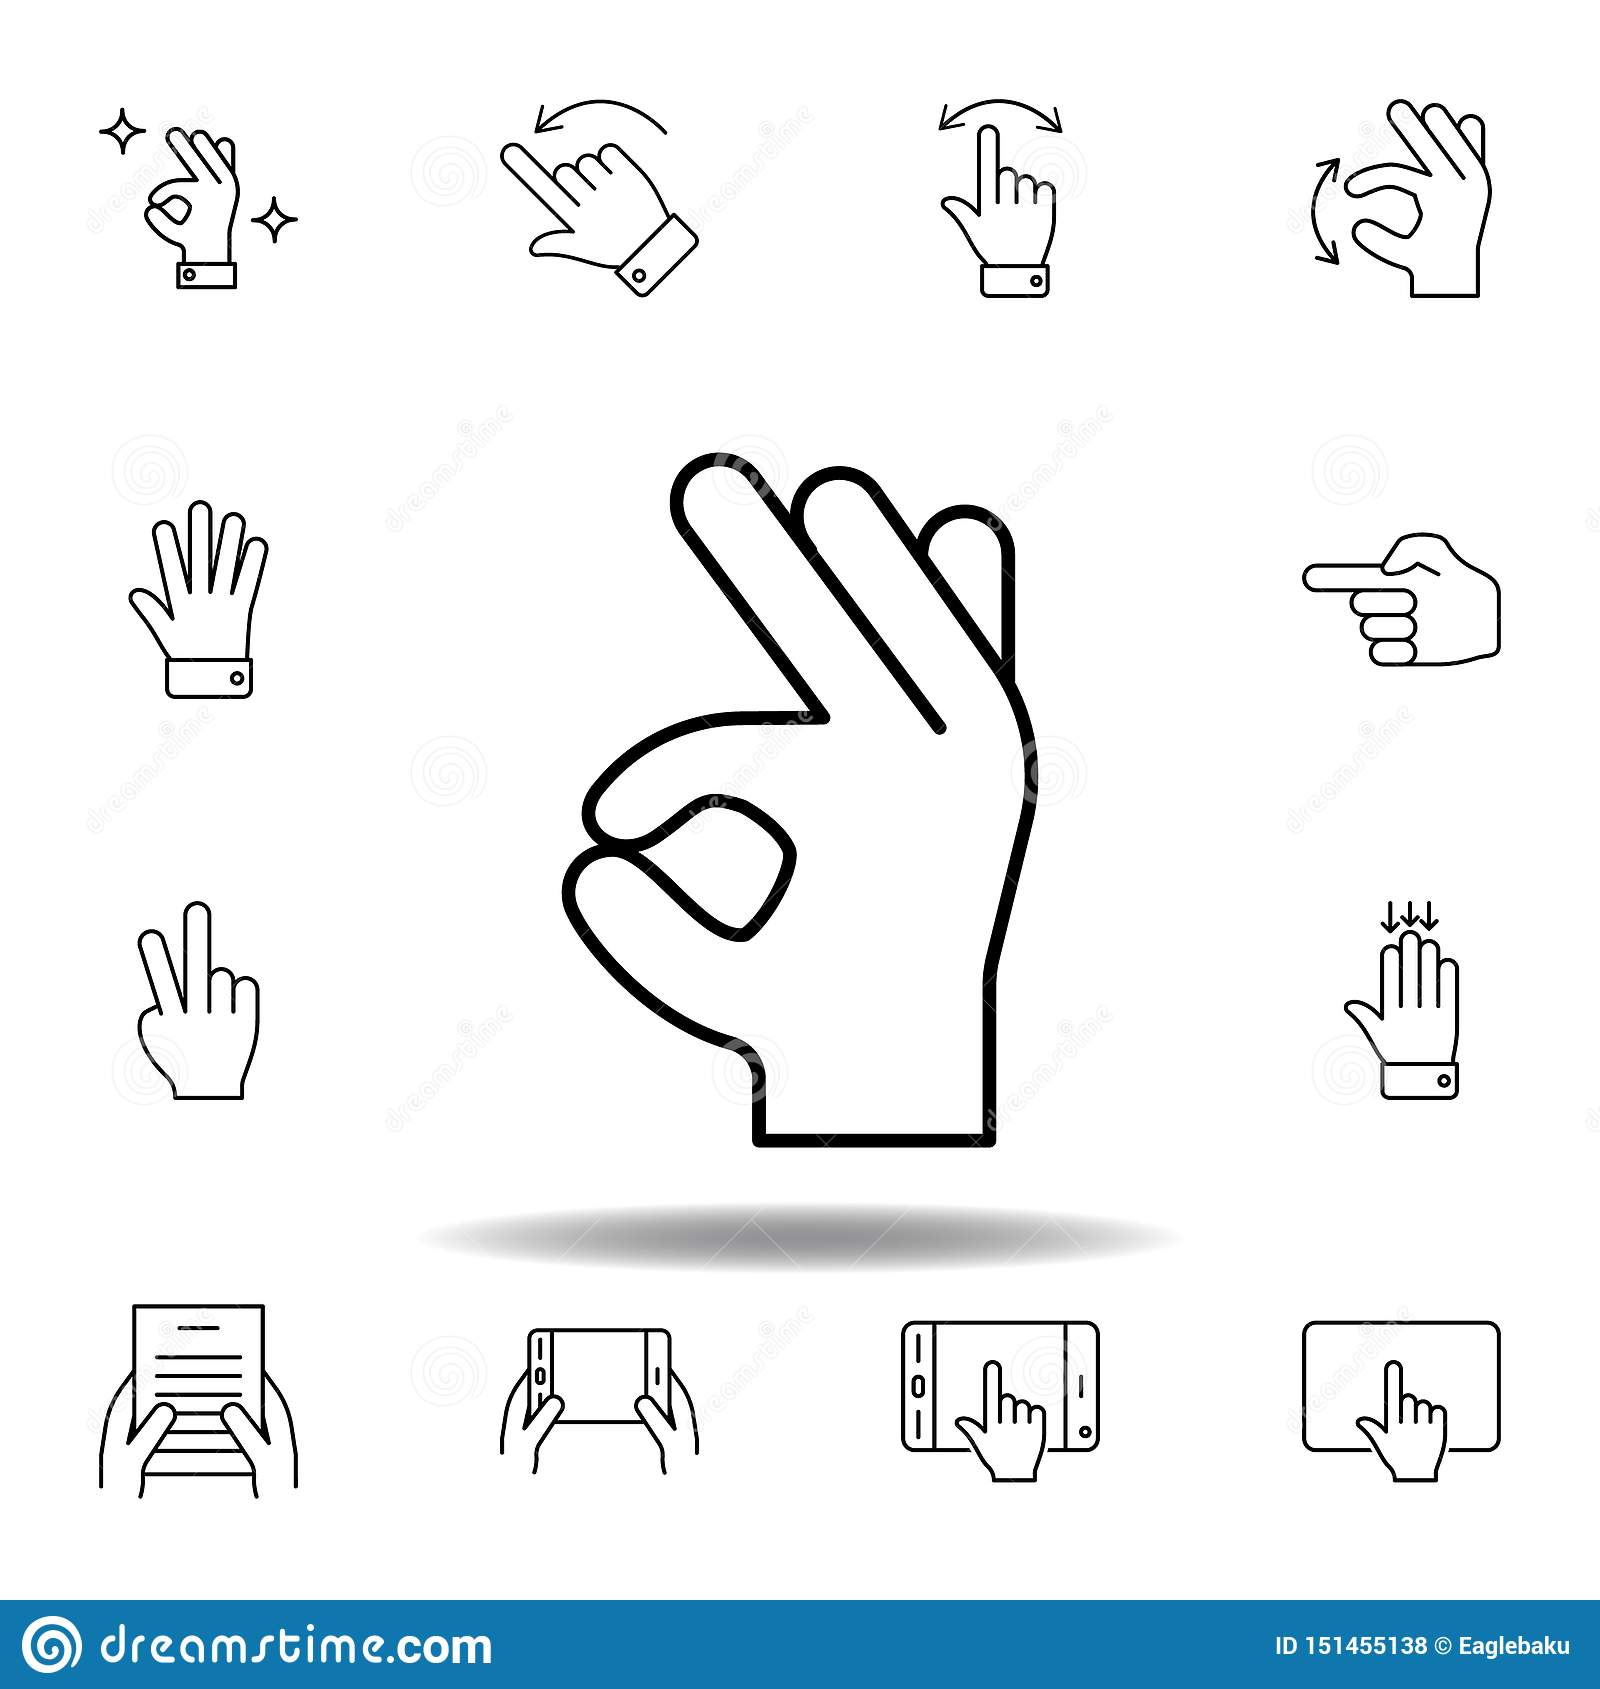 good, perfect gesture outline icon. Set of hand gesturies illustration. Signs and symbols can be used for web, logo, mobile app,